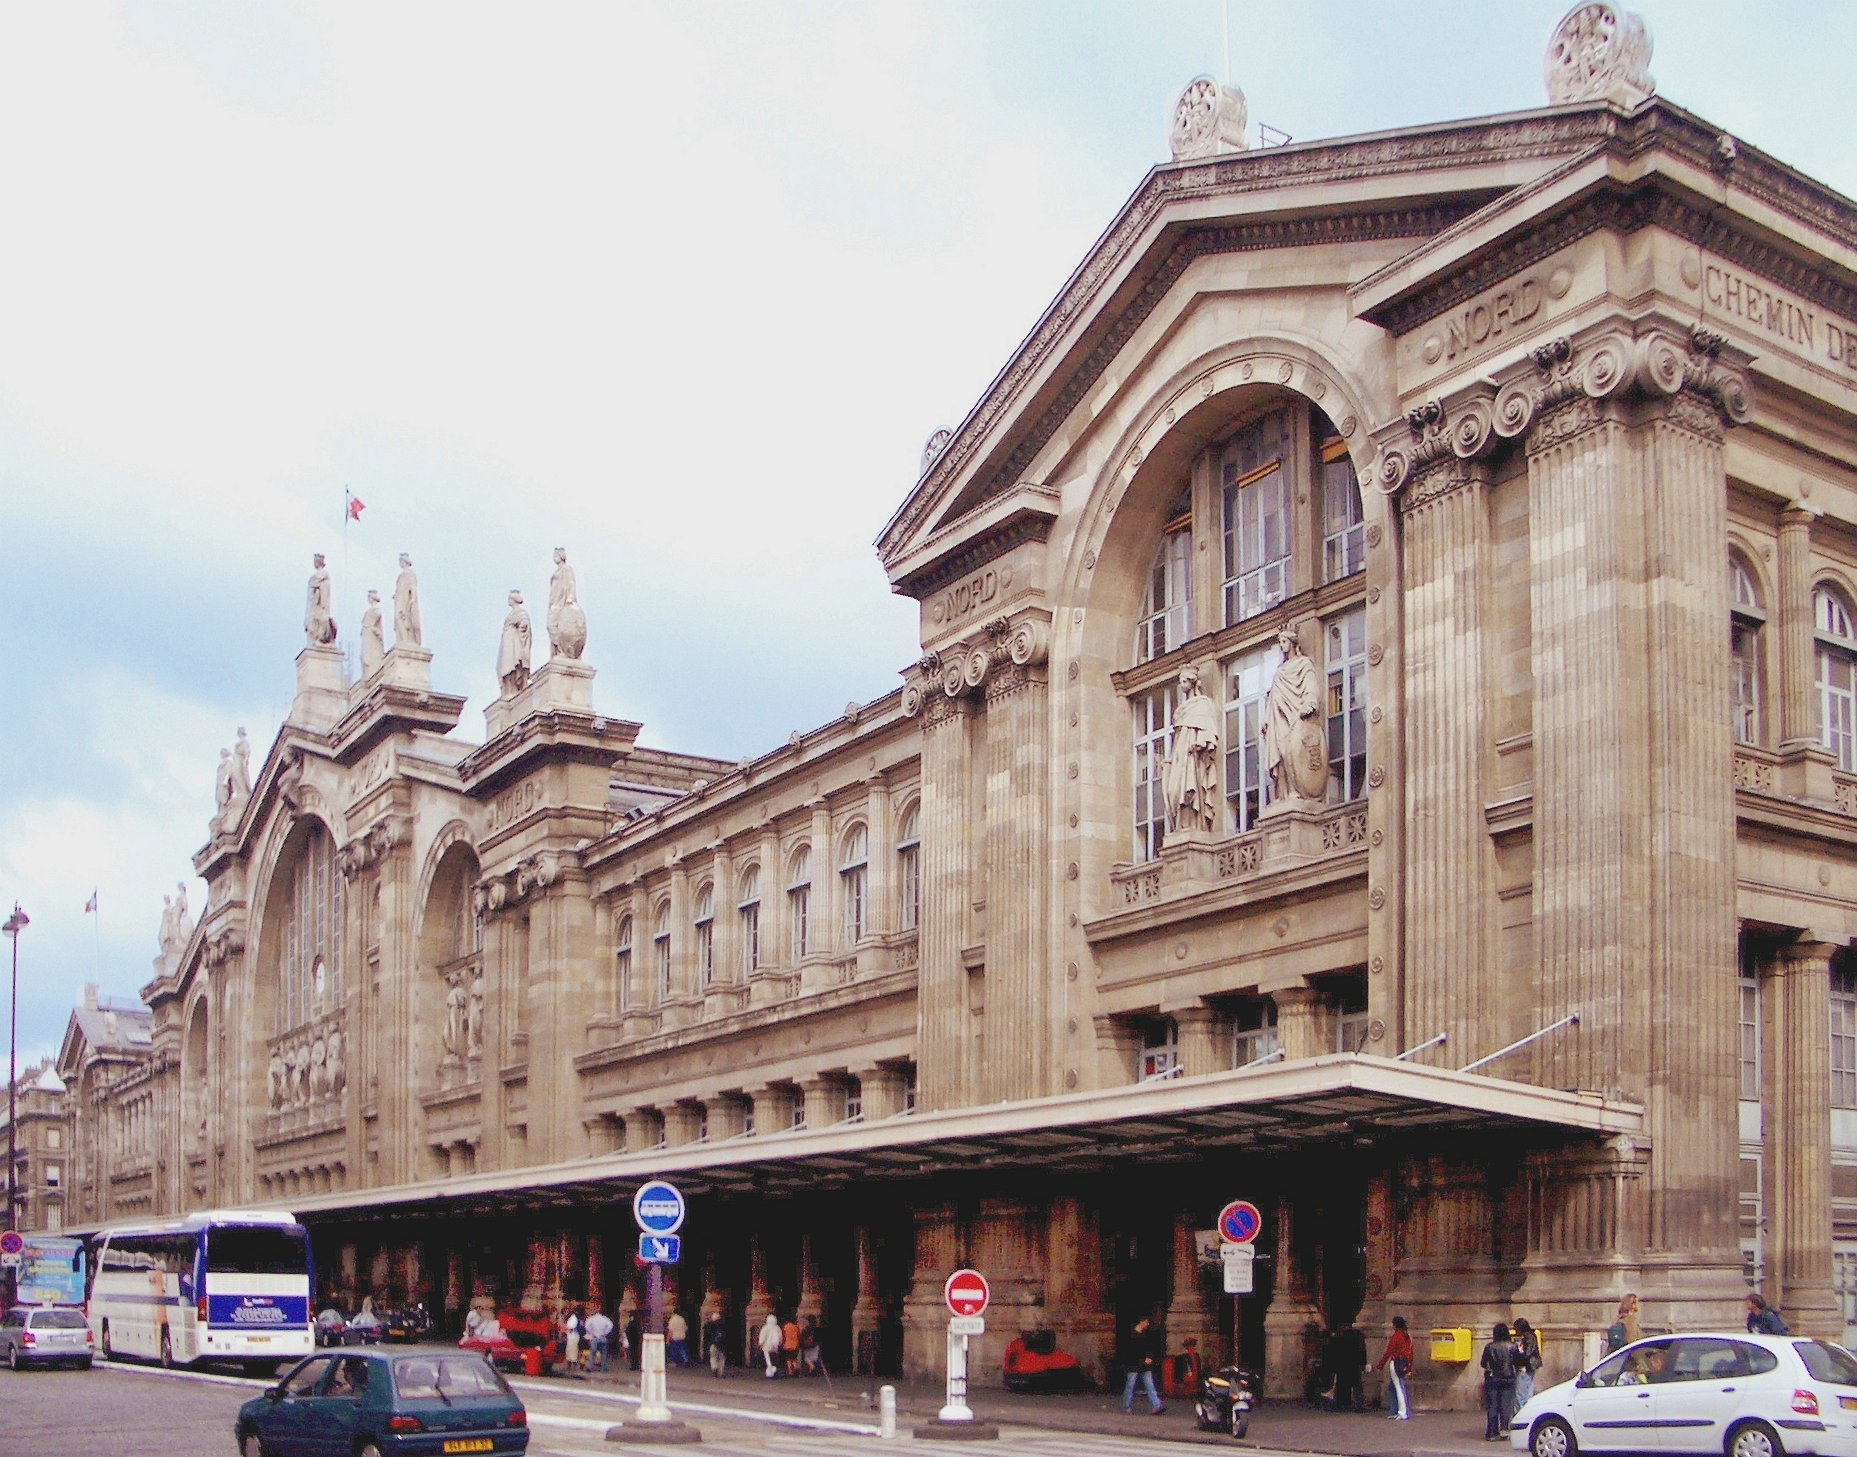 Paris-Gare-du-Nord-train-station